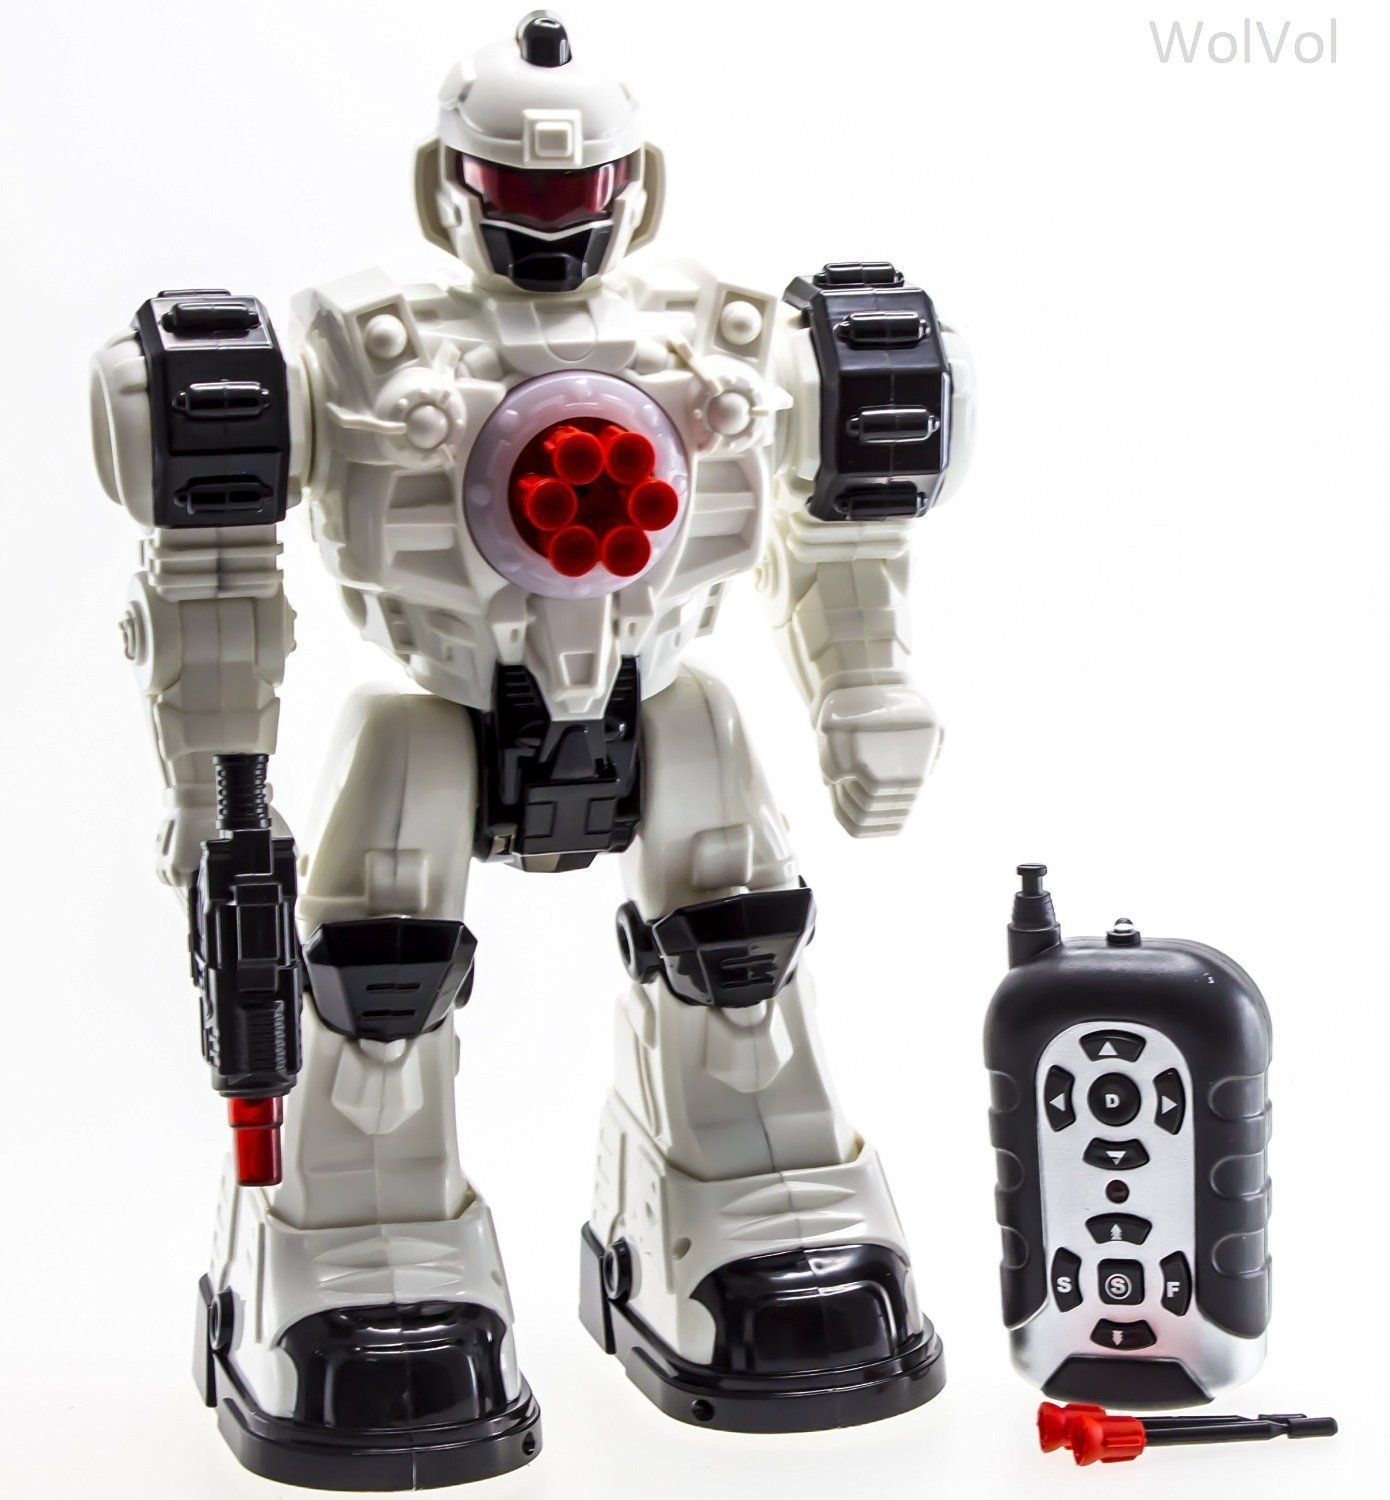 WolVol Remote Control Toy Robot Toy Robots Pinterest